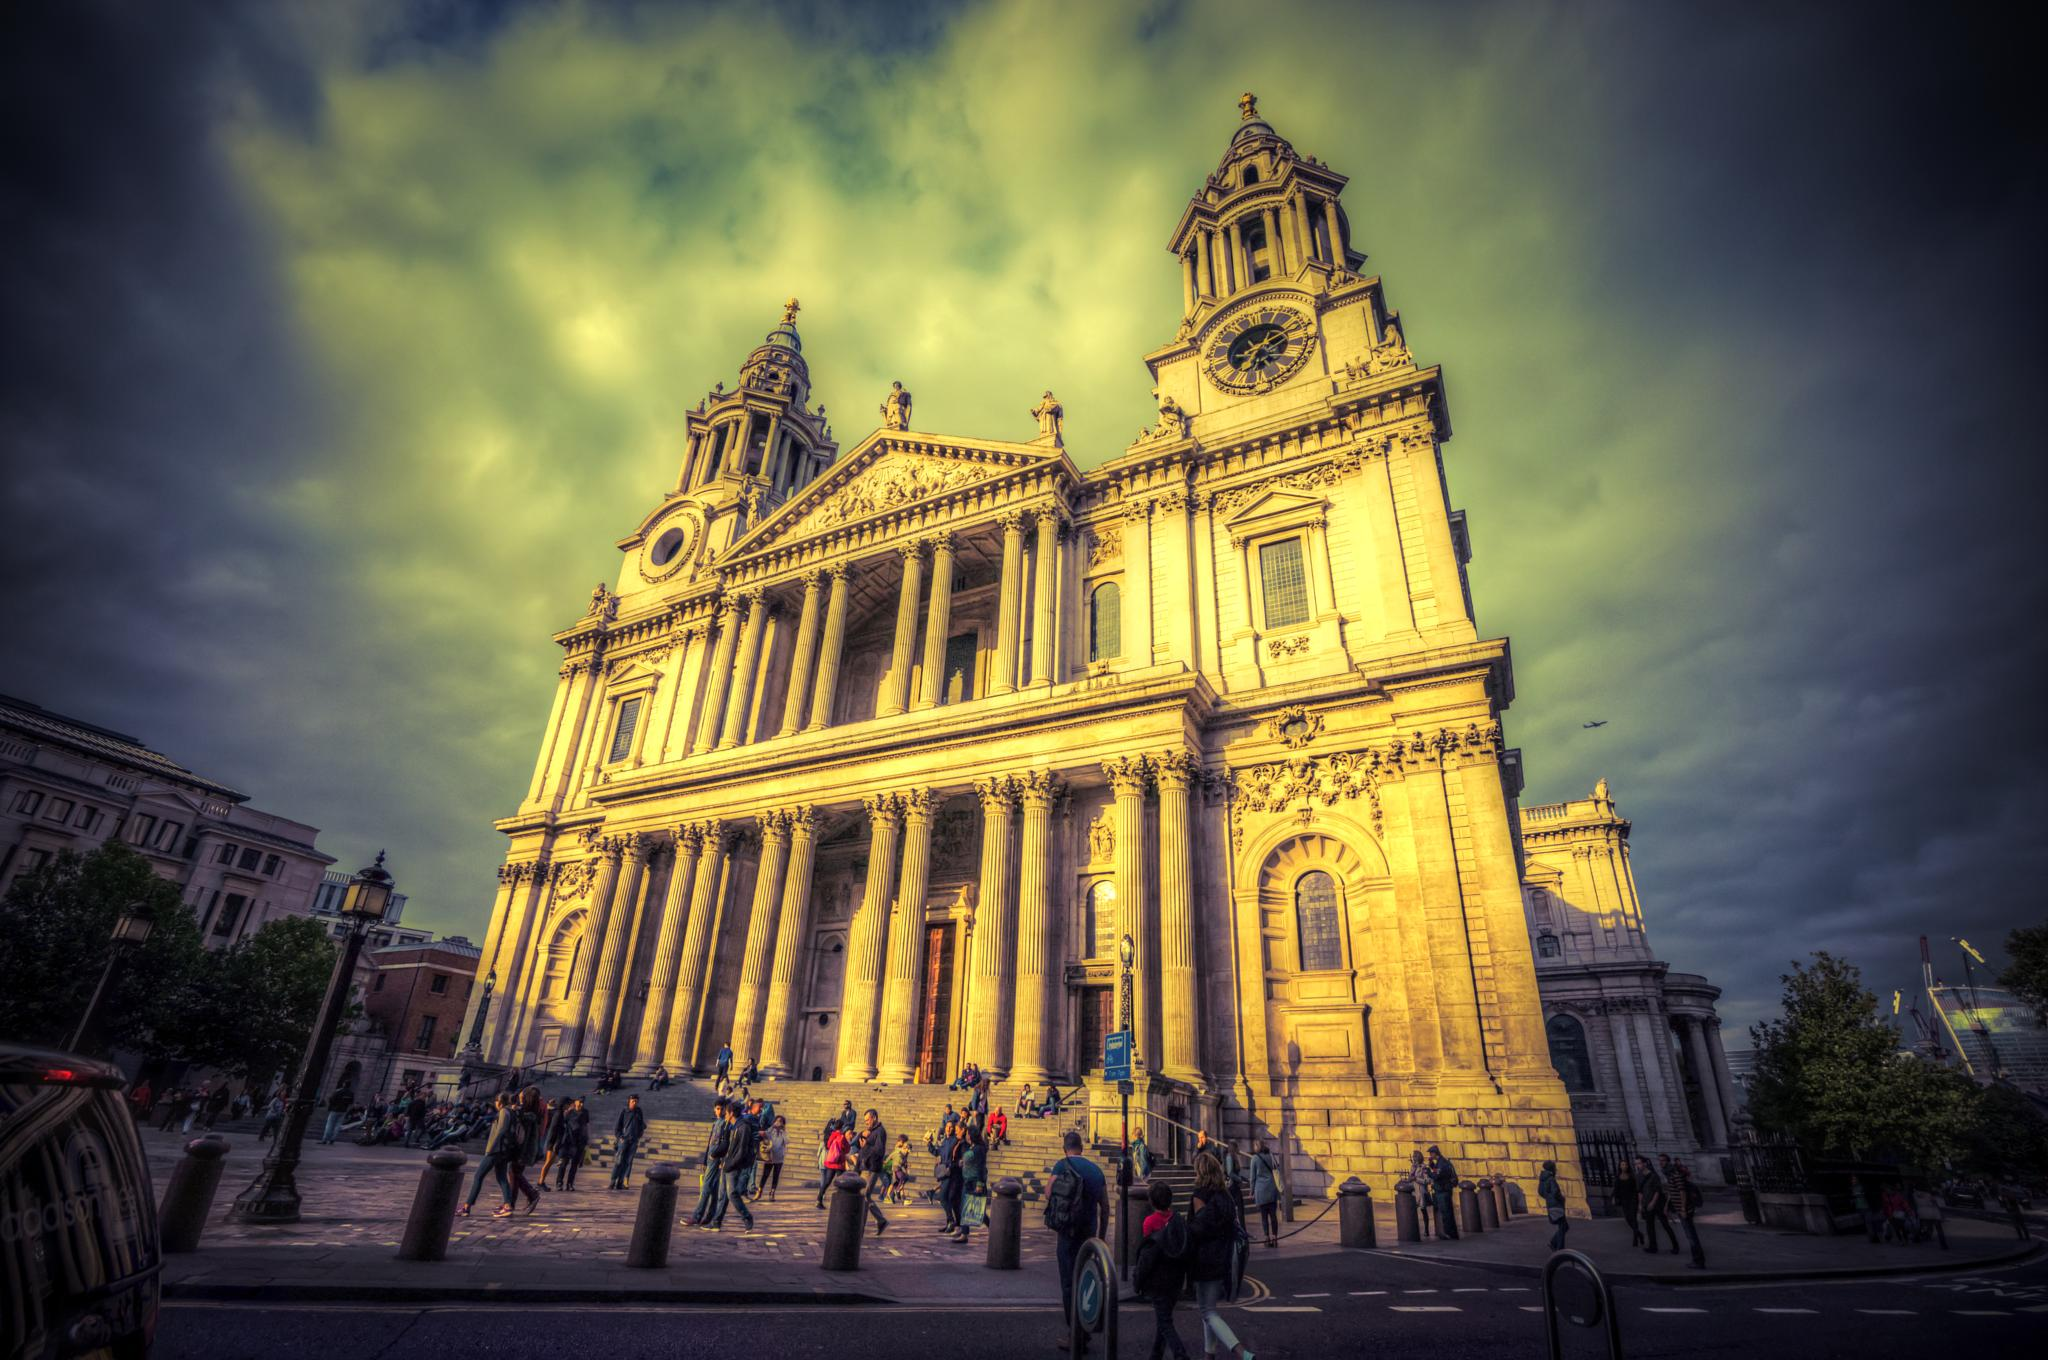 Sun setting on St Pauls by rickyban_Photography